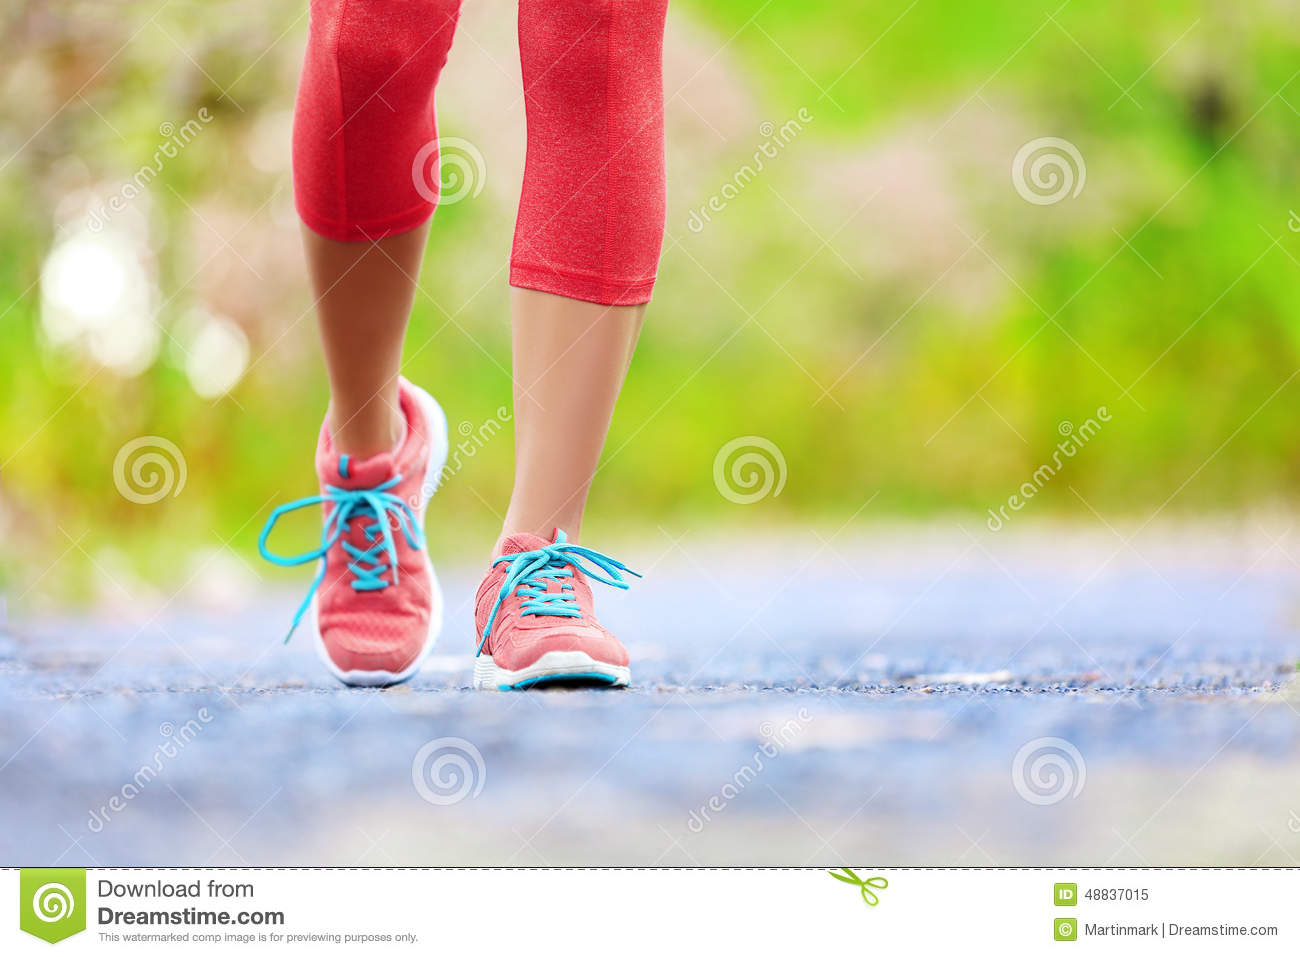 Jogging woman with athletic legs and running shoes